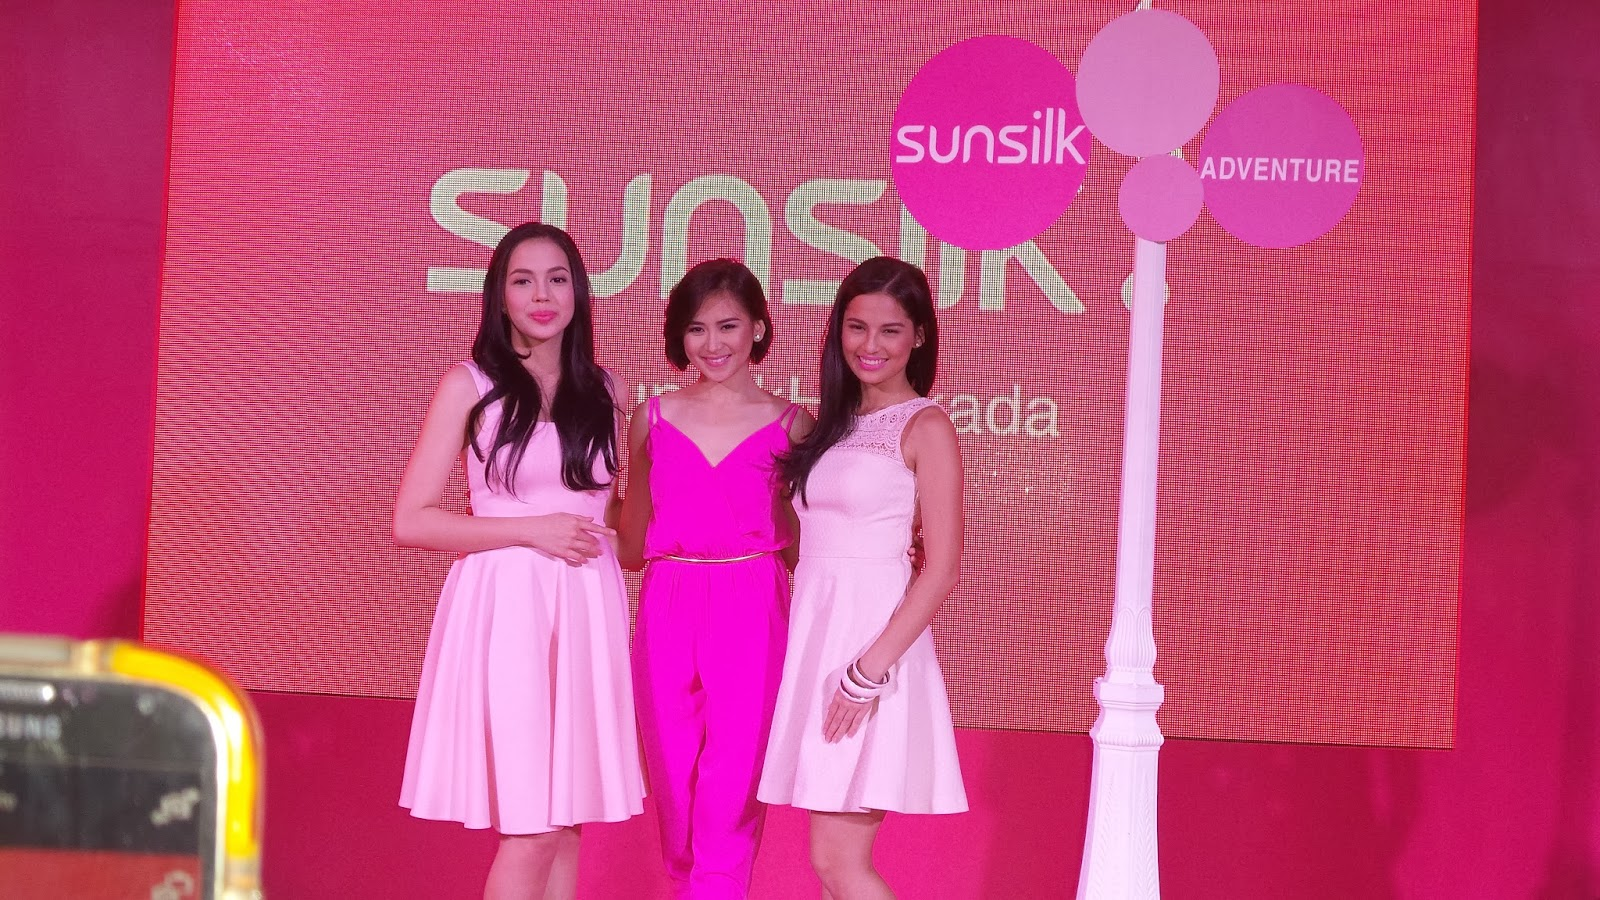 fa1cba5f4e6b Girls were treated to a night of fun, pampering and adventure at a recent  #SunsilkHairkada event. There were booths provided to style your crowning  glory ...